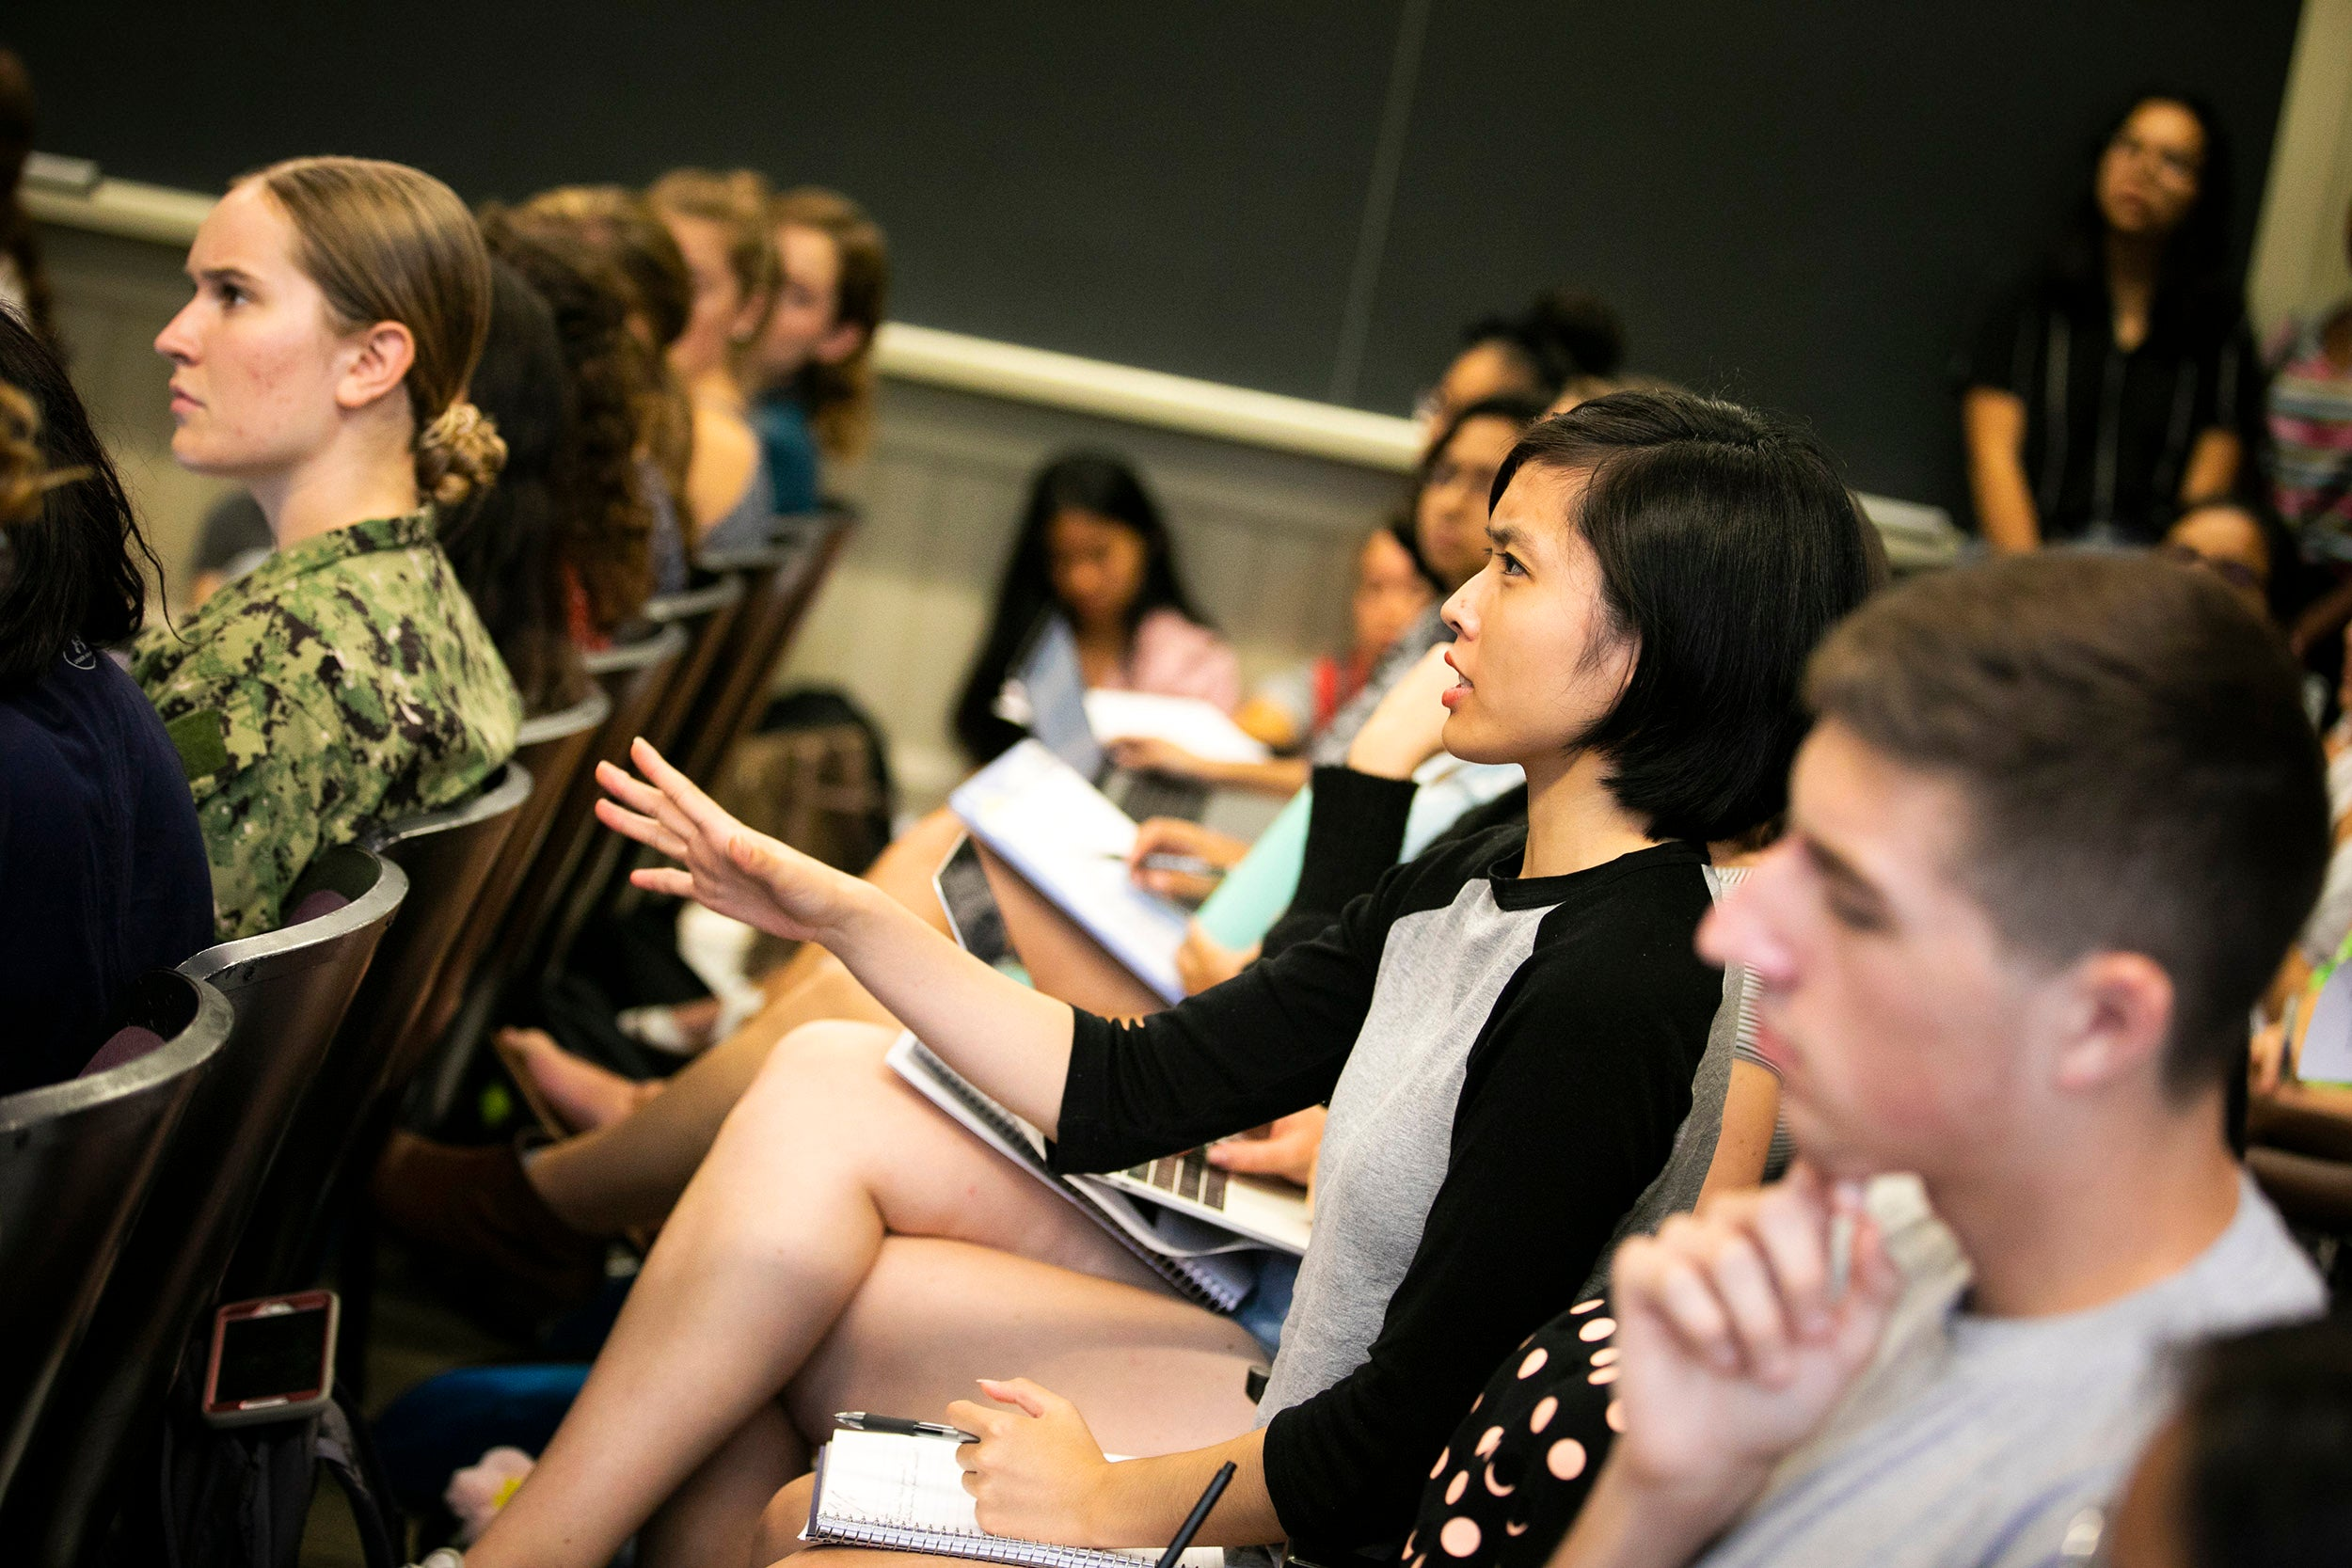 Phoebe Suh speaks during class.